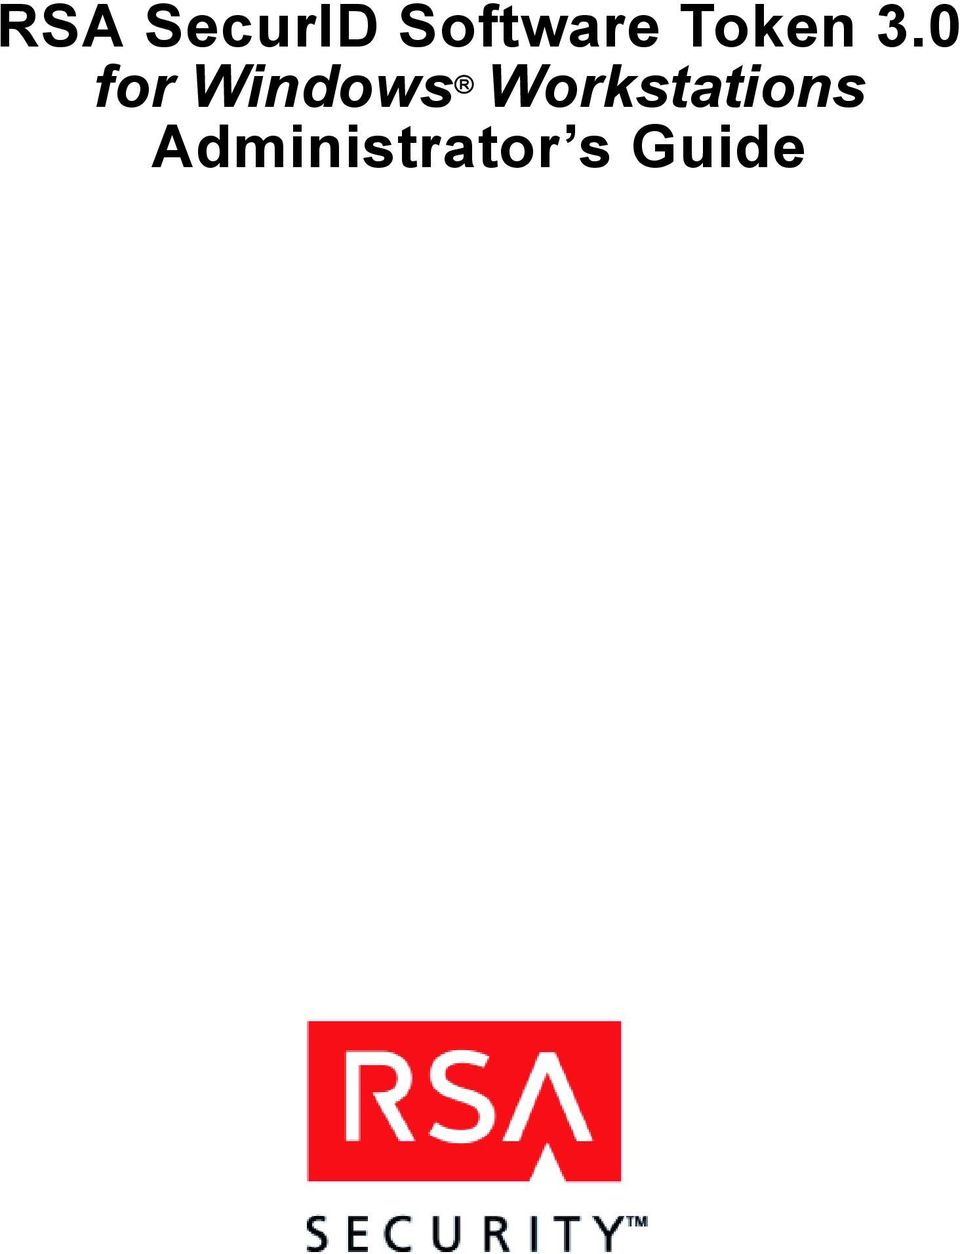 RSA SecurID Software Token 3.0 for Windows Workstations